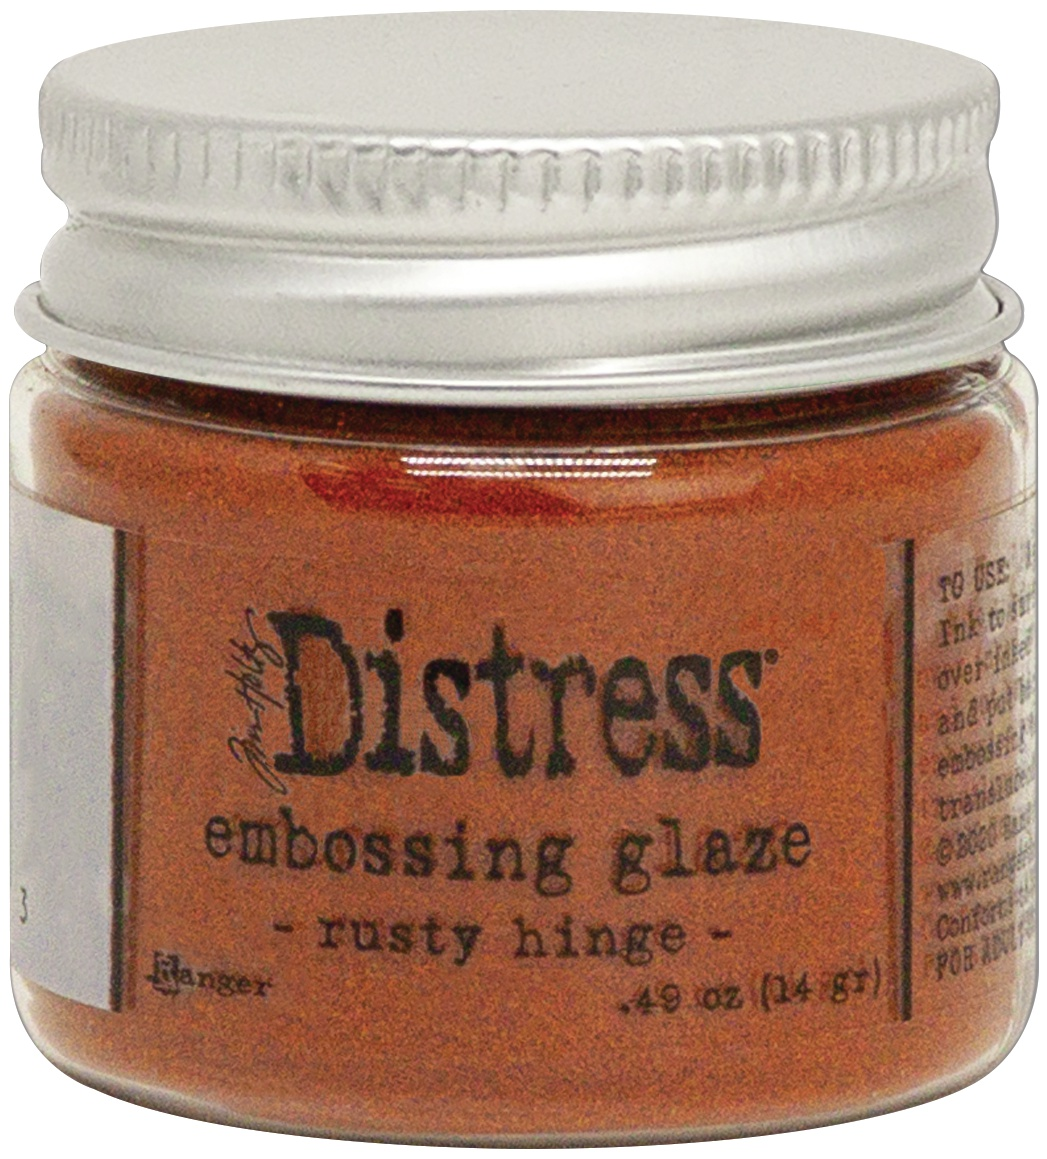 Tim Holtz Distress Embossing Glaze -Rusty Hinge